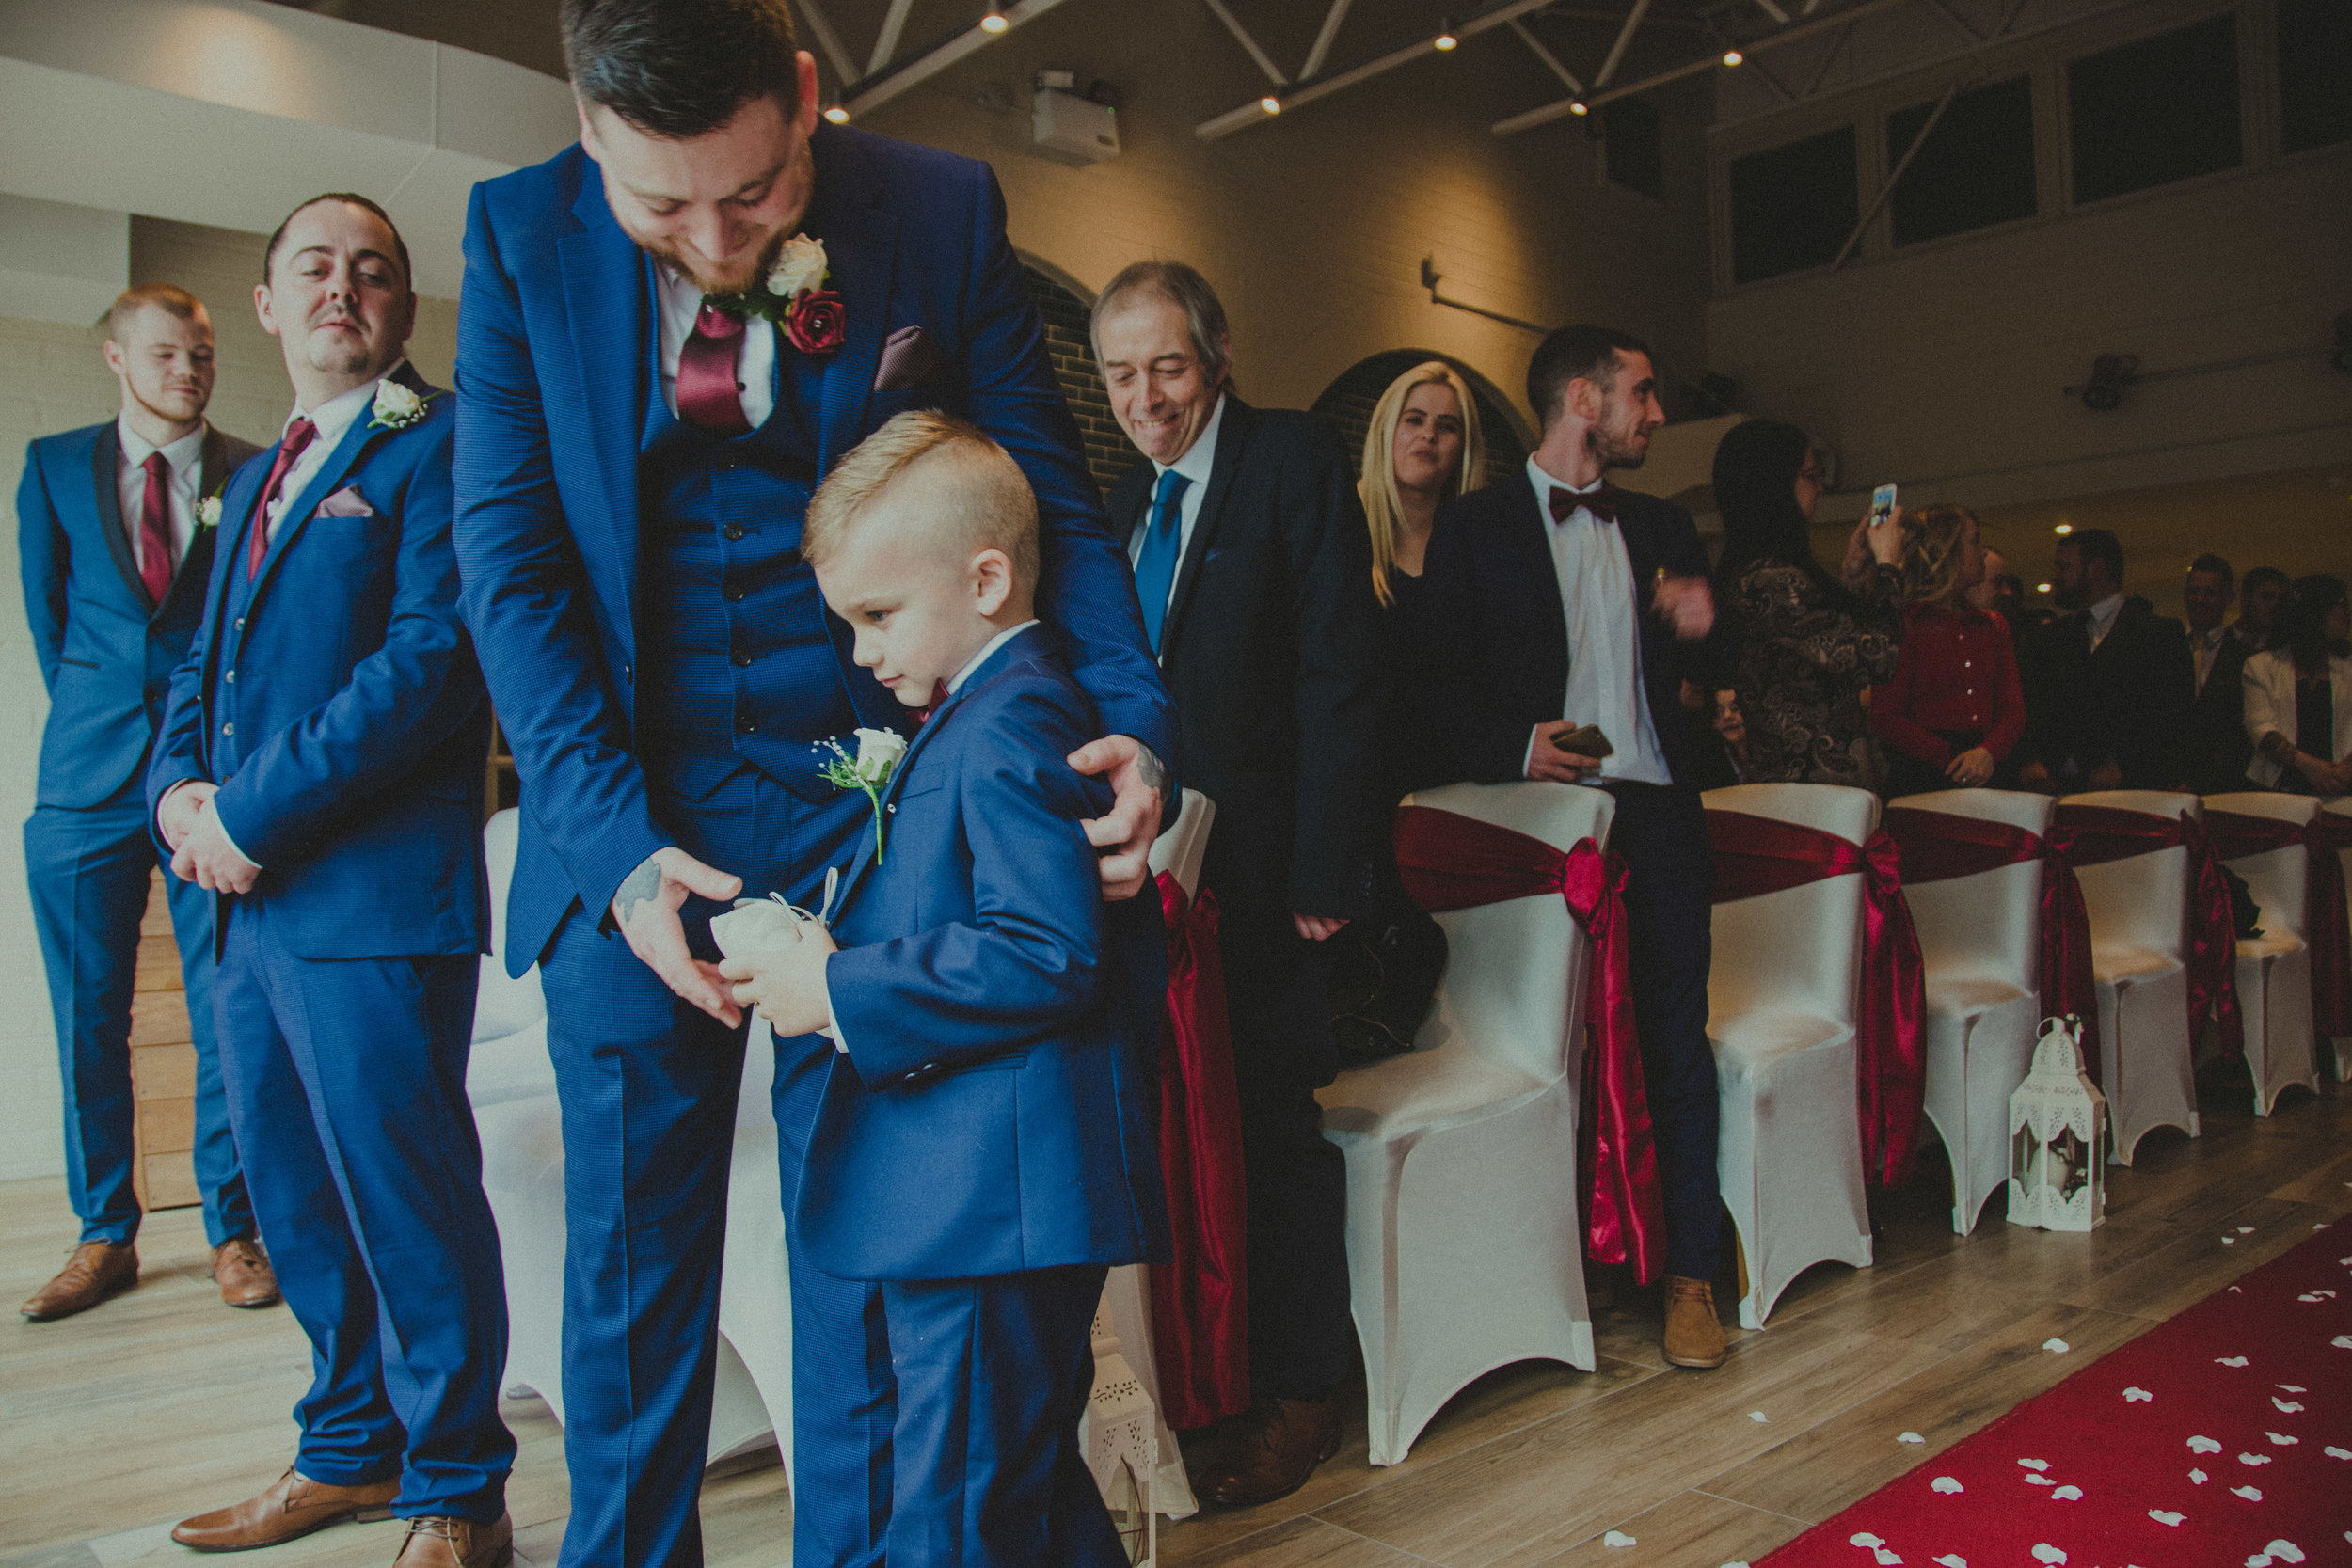 Cheshire wedding photographer knutford wedding photographer wedding photographer northwest wedding photographer peak district wedding photographer award winning wedding photographer (1 of 1).jpg